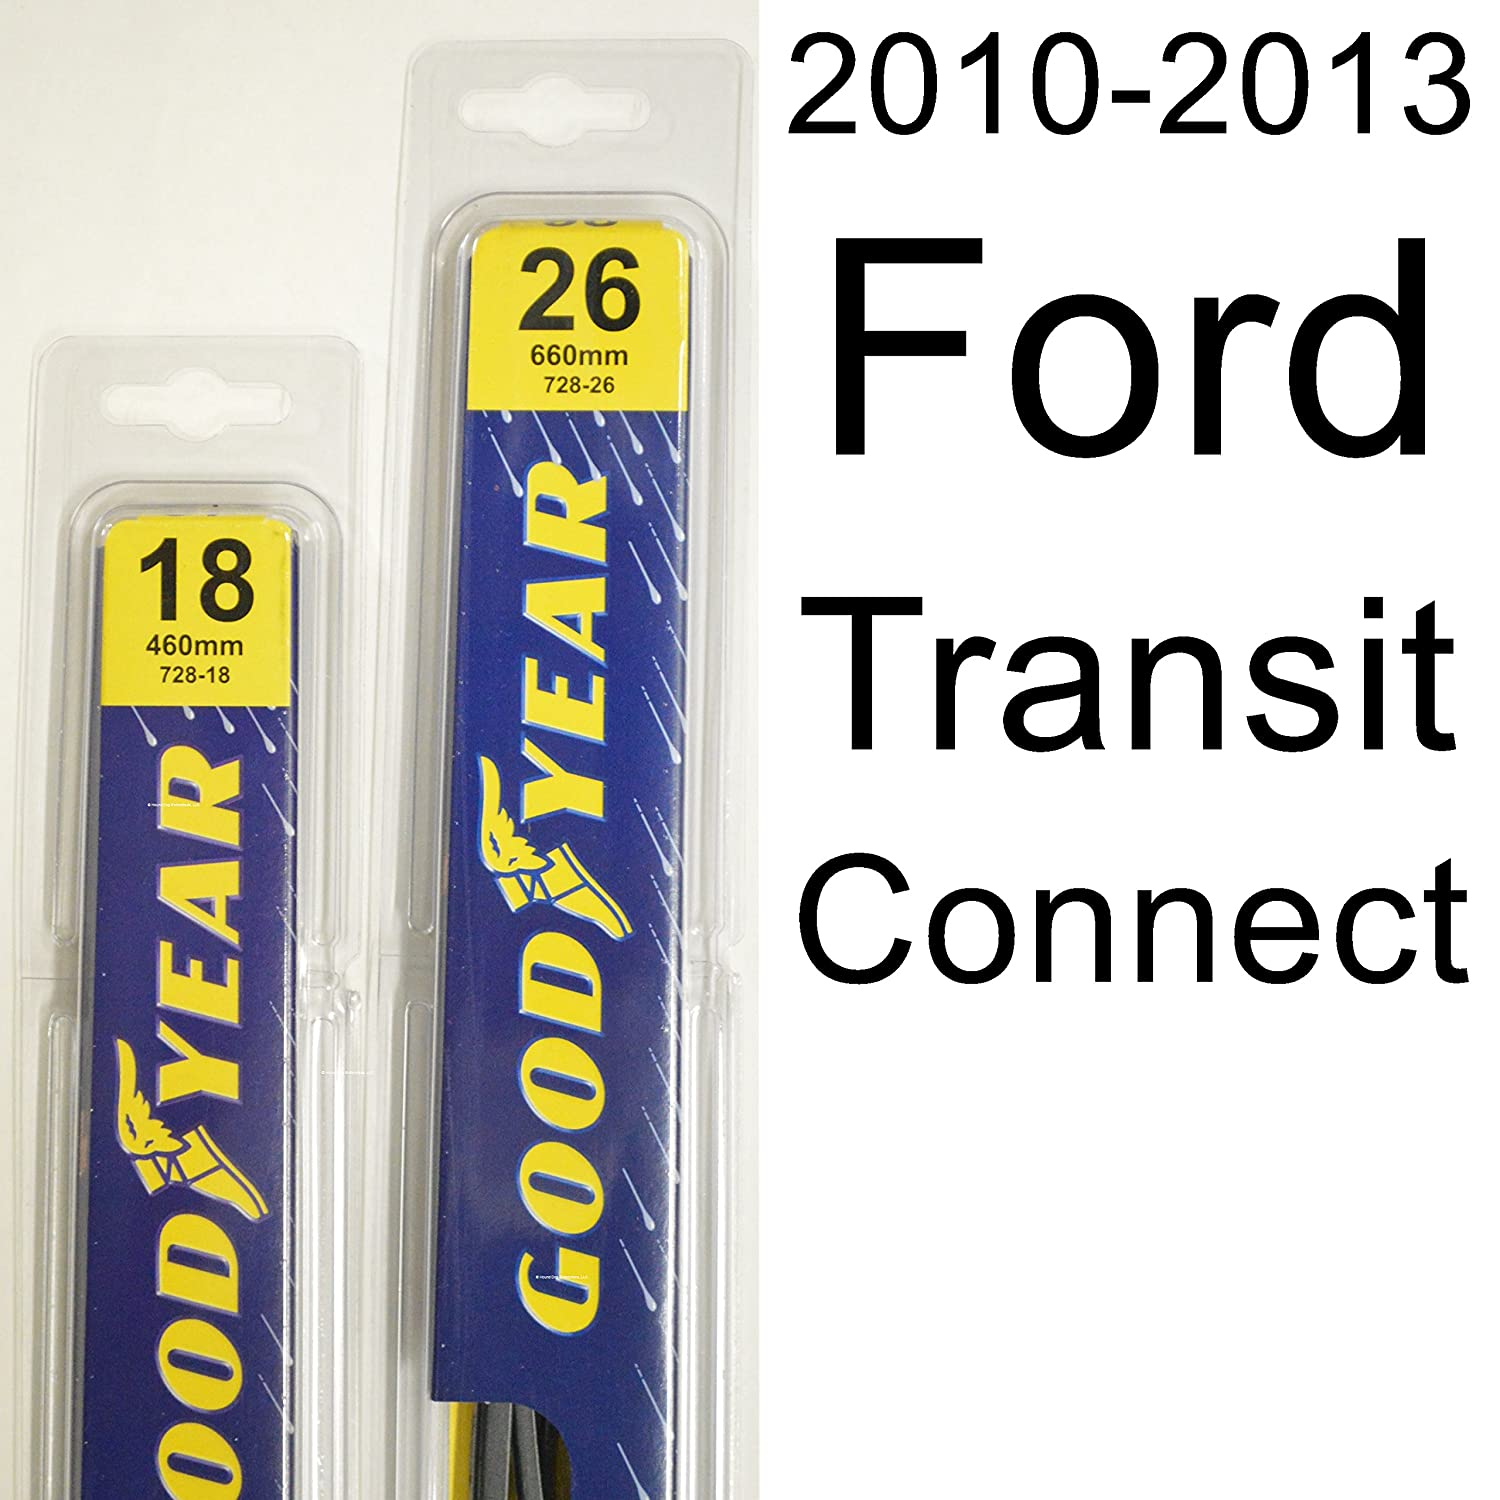 "Amazon.com: Ford Transit Connect (2010-2013) Wiper Blade Kit - Set Includes  26"" (Driver Side), 18"" (Passenger Side) (2 Blades Total): Automotive"